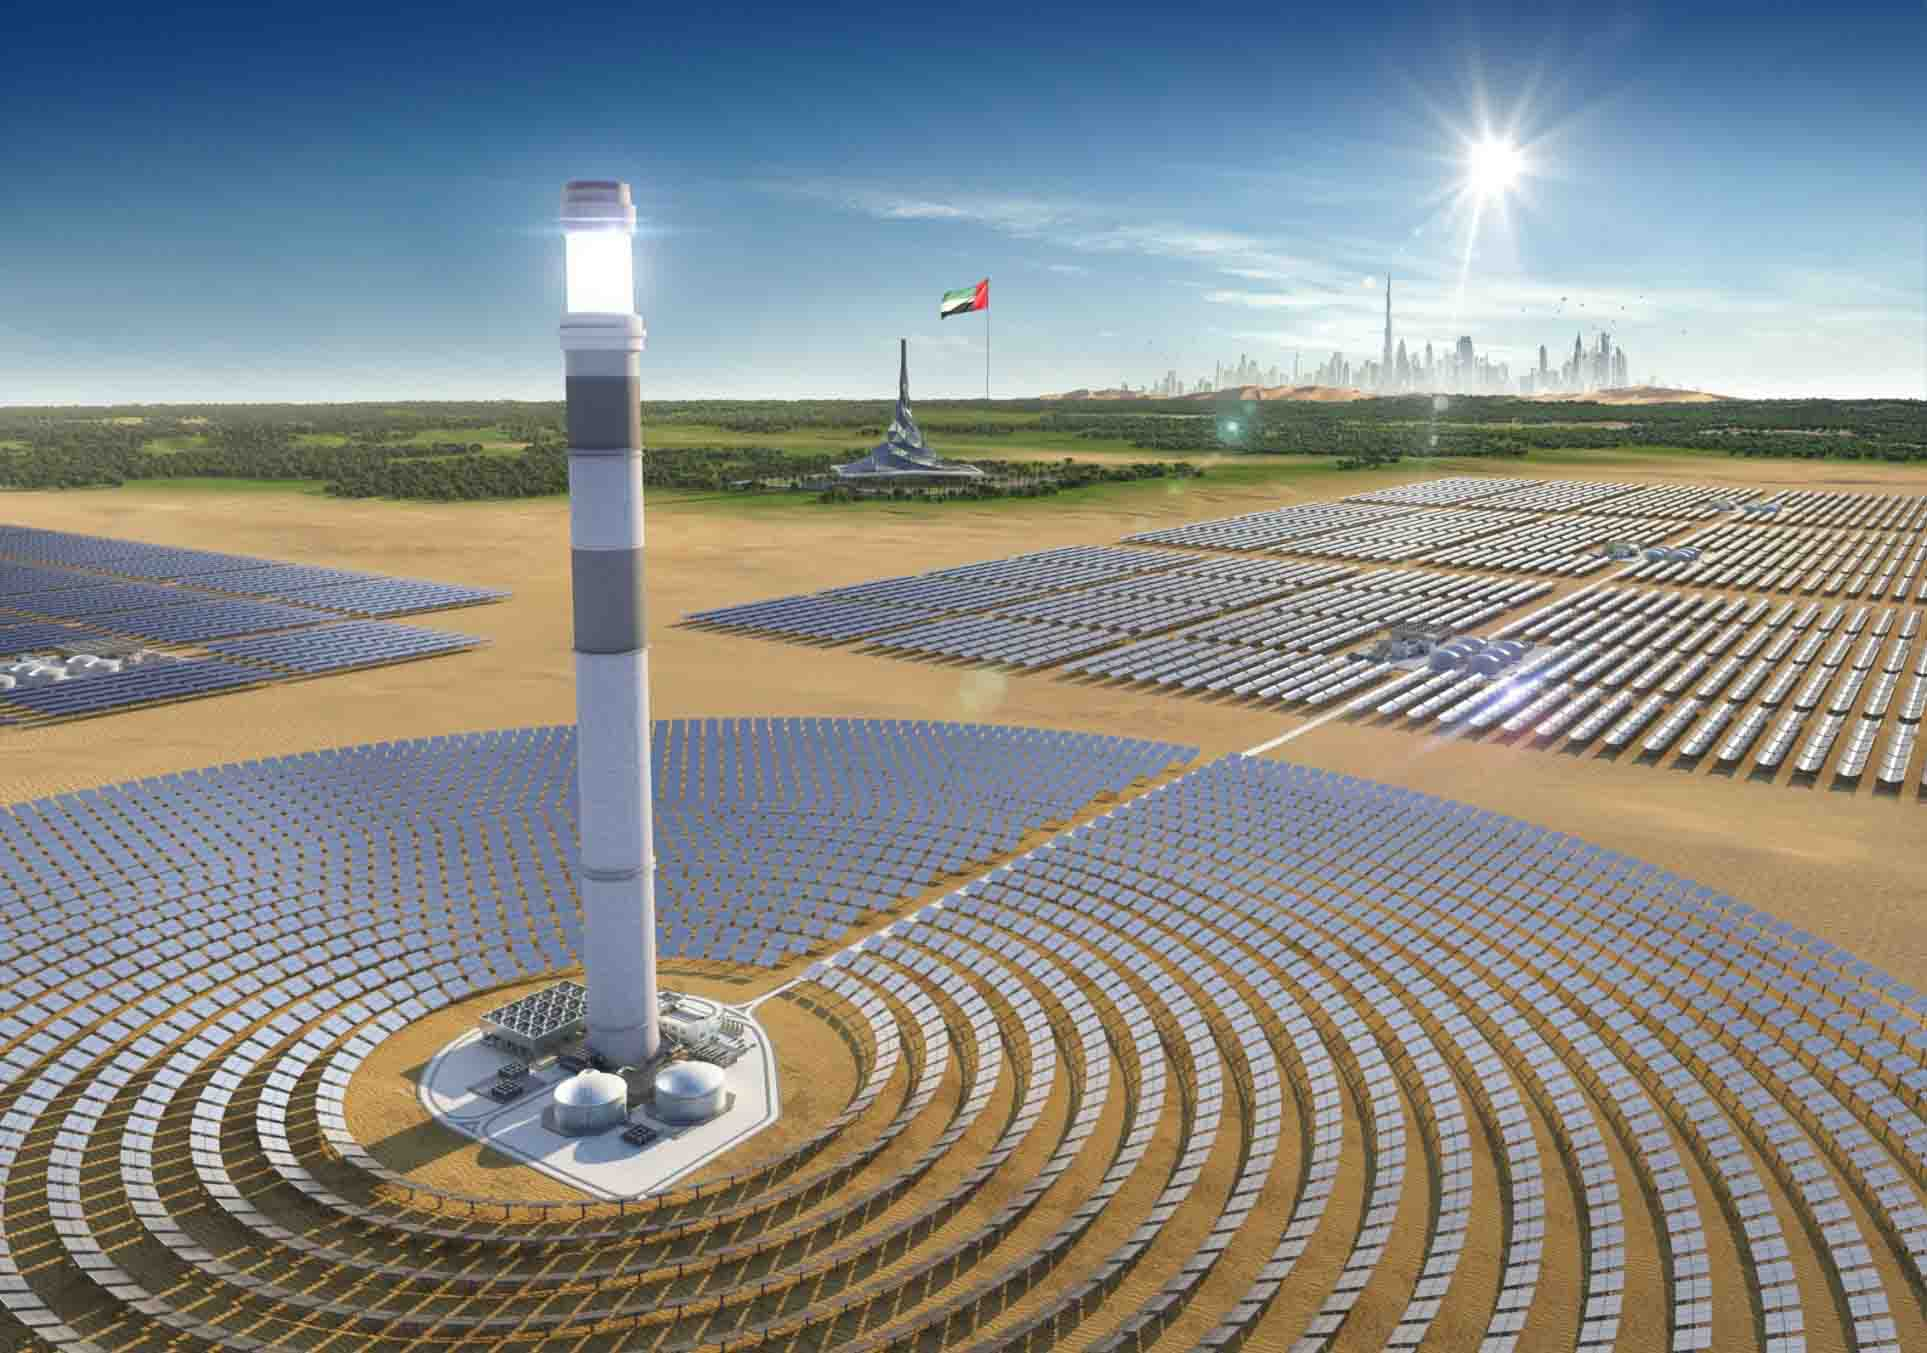 WETEX 2018 Documents the UAE's Drive Towards Green Energy Reliance, in Line with the Growing Global Trend